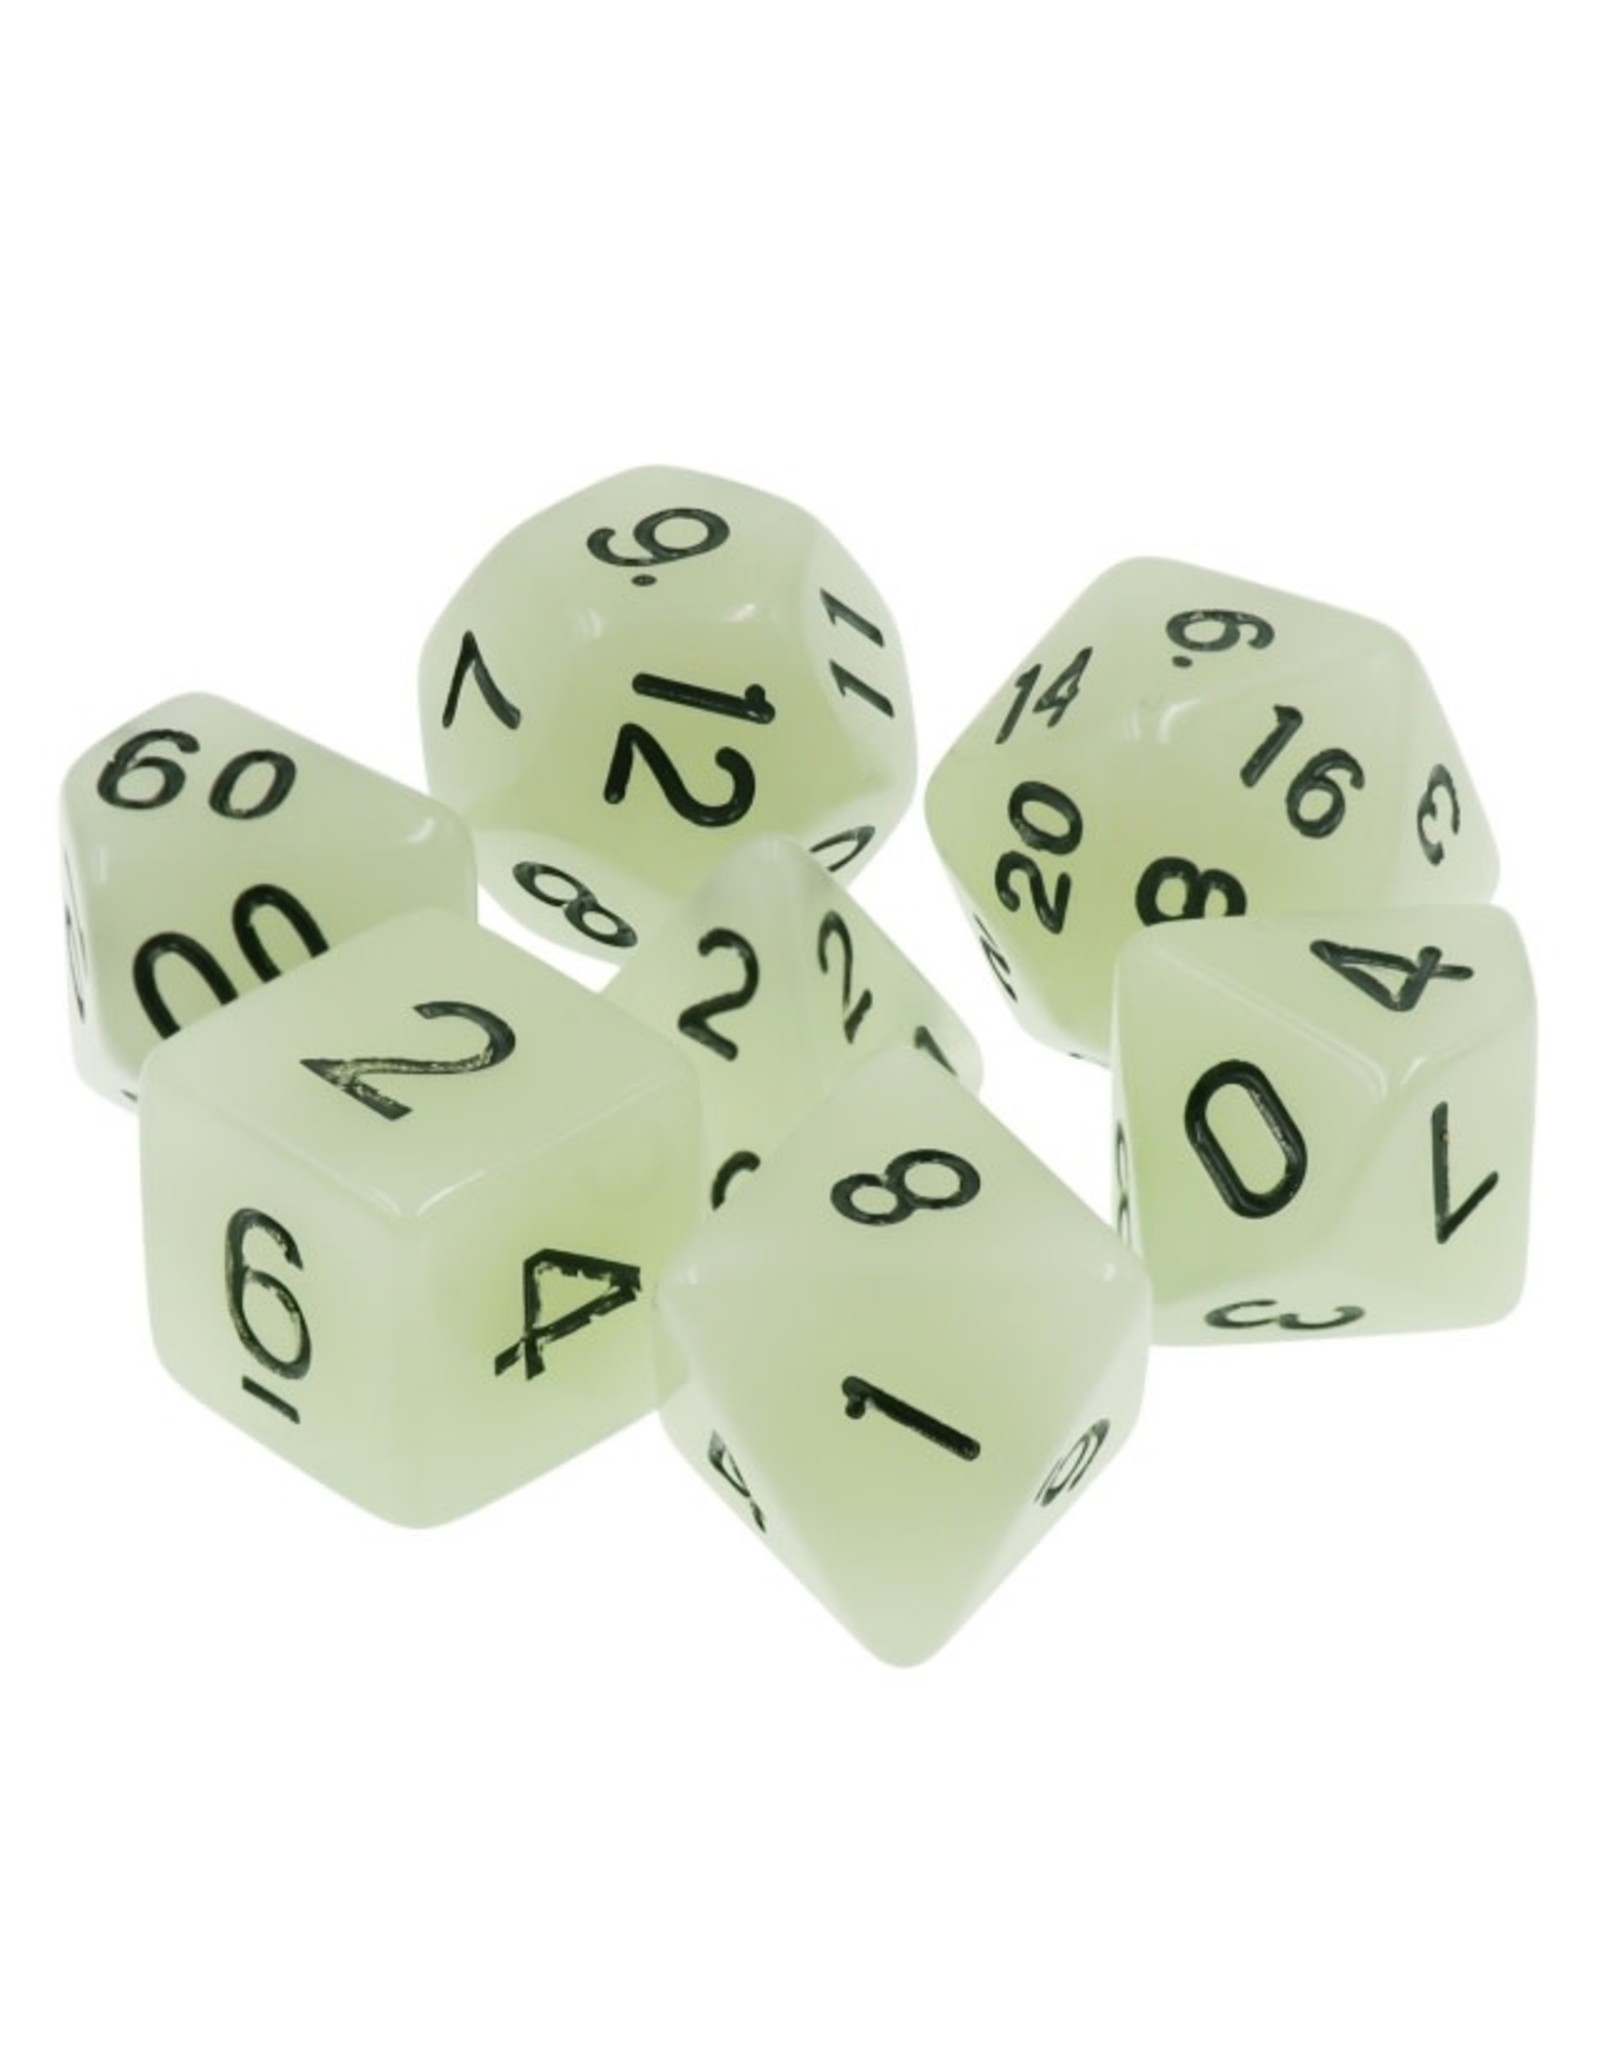 HD Dice 7-Set Glow in the Dark White Dice with Black Numbers (HD)